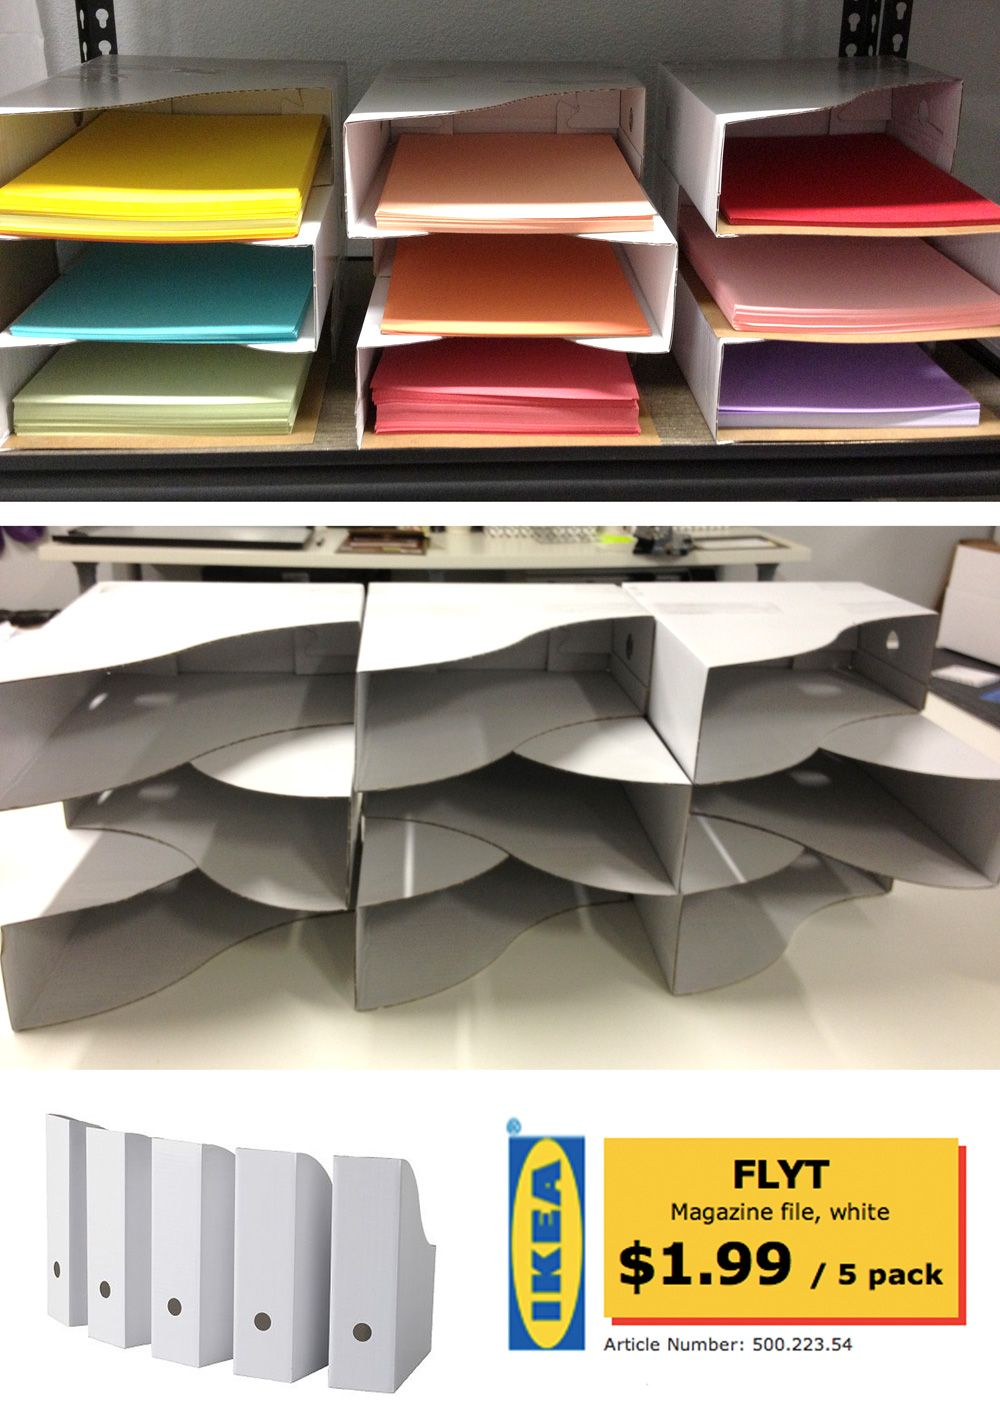 Merveilleux DIY Paper Sorter From Stacked Magazine Files. Just Tape Together With  Packing Tape. More